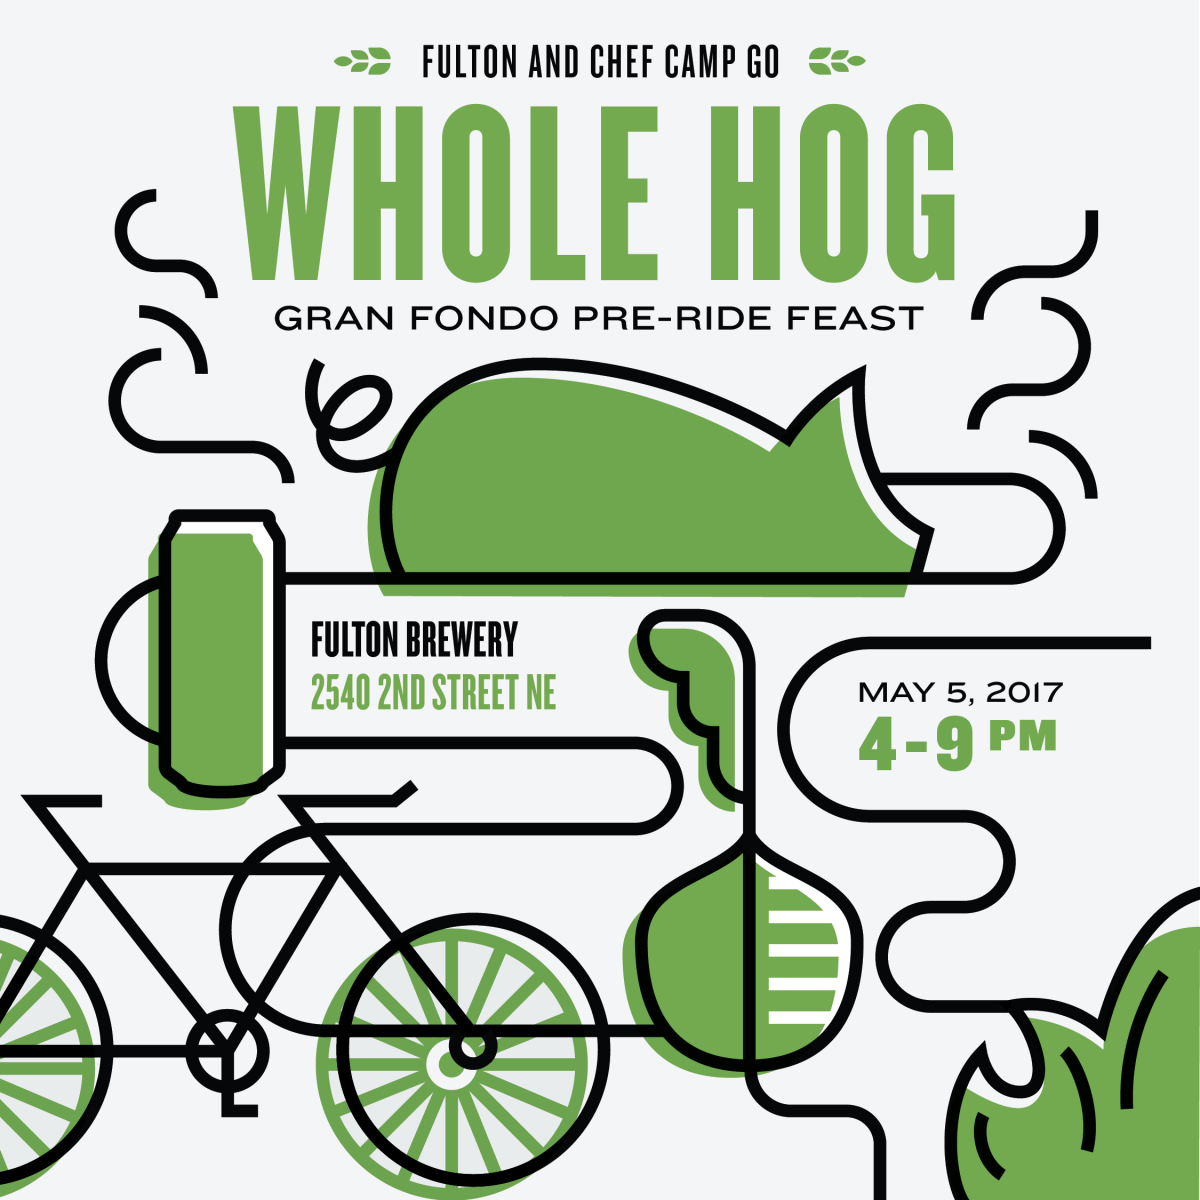 Fulton Gran Fondo Friday Whole Hog Feast